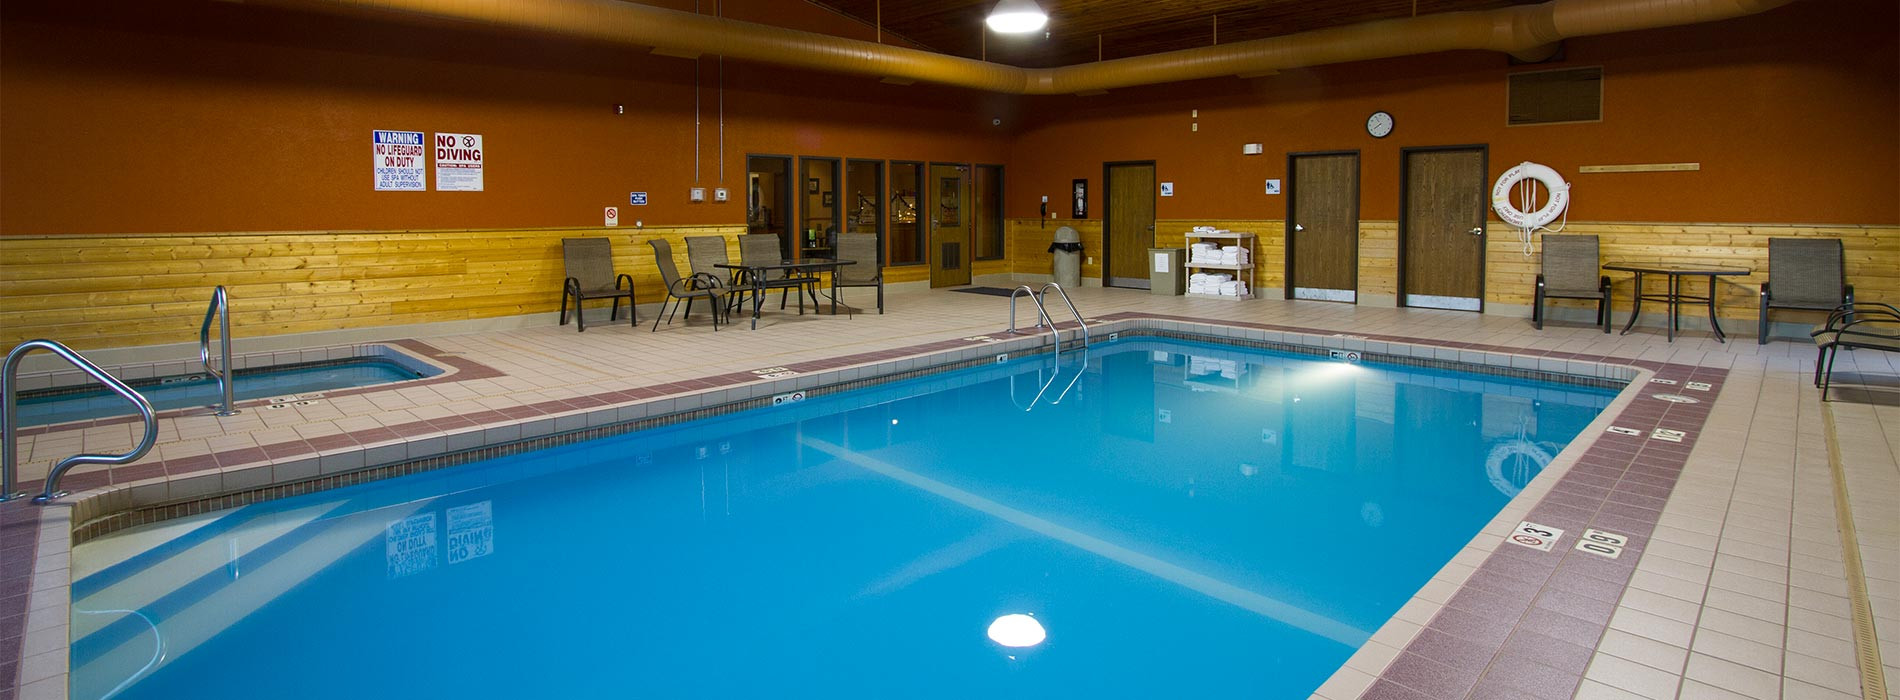 Swimming Pool at the Miles City Hotel & Suites, Miles City, Montana